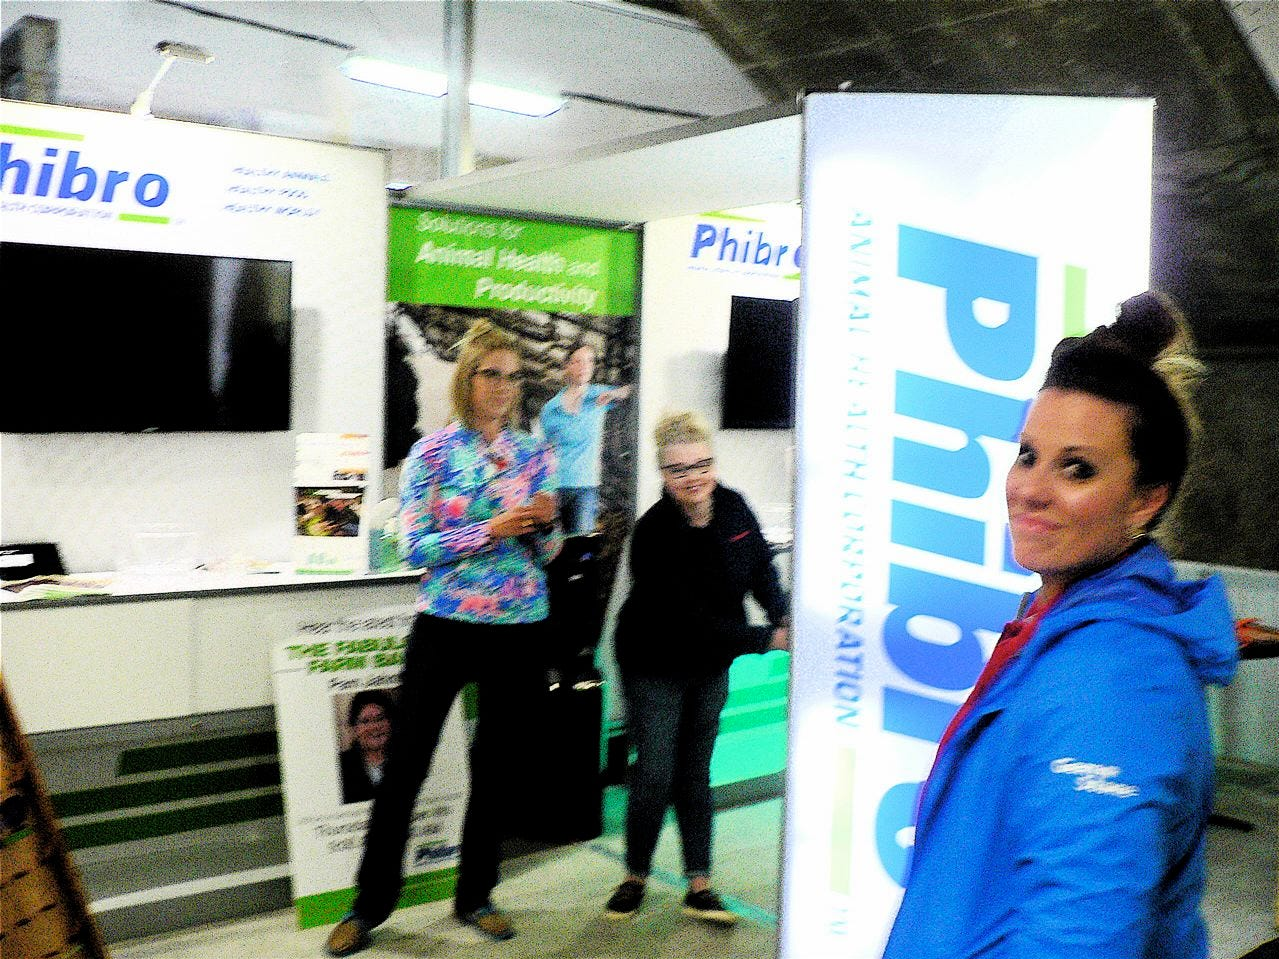 Breeana DeVerger (right) views the completed Philbro exhibit and says there will be about 40 people manning it over Dairy Expo.